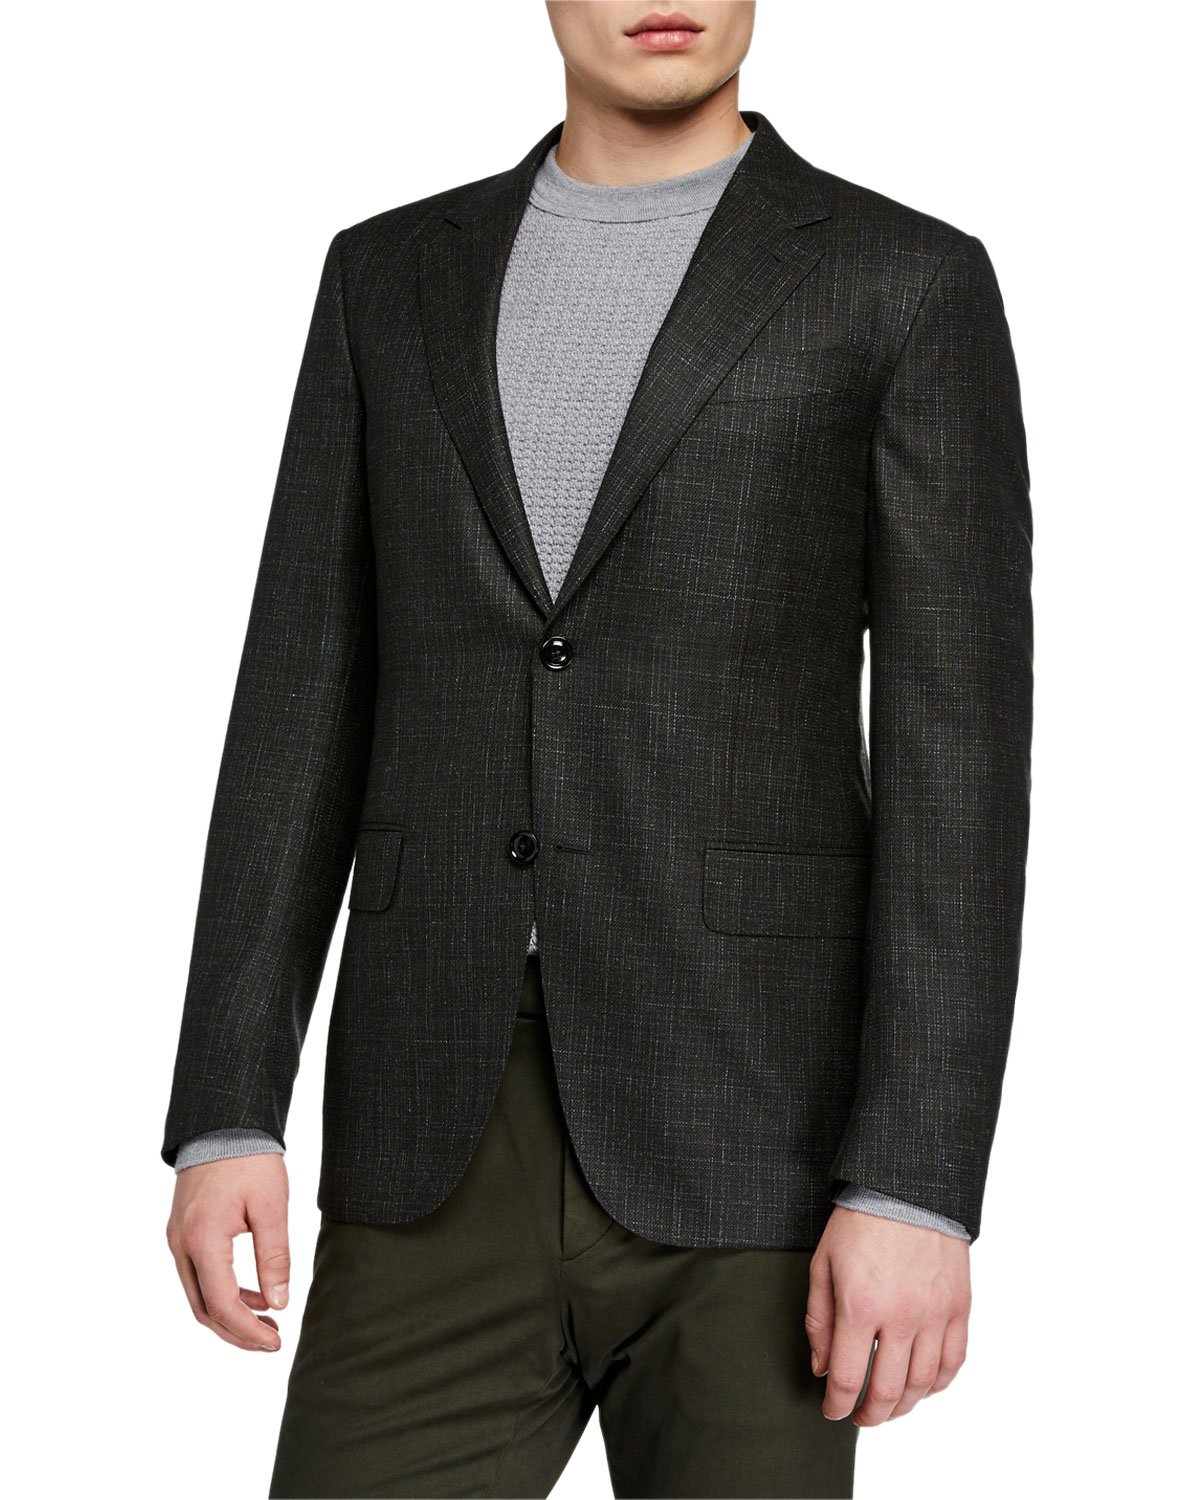 Ermenegildo Zegna Men's Heathered Wool/Cashmere Regular-Fit Blazer